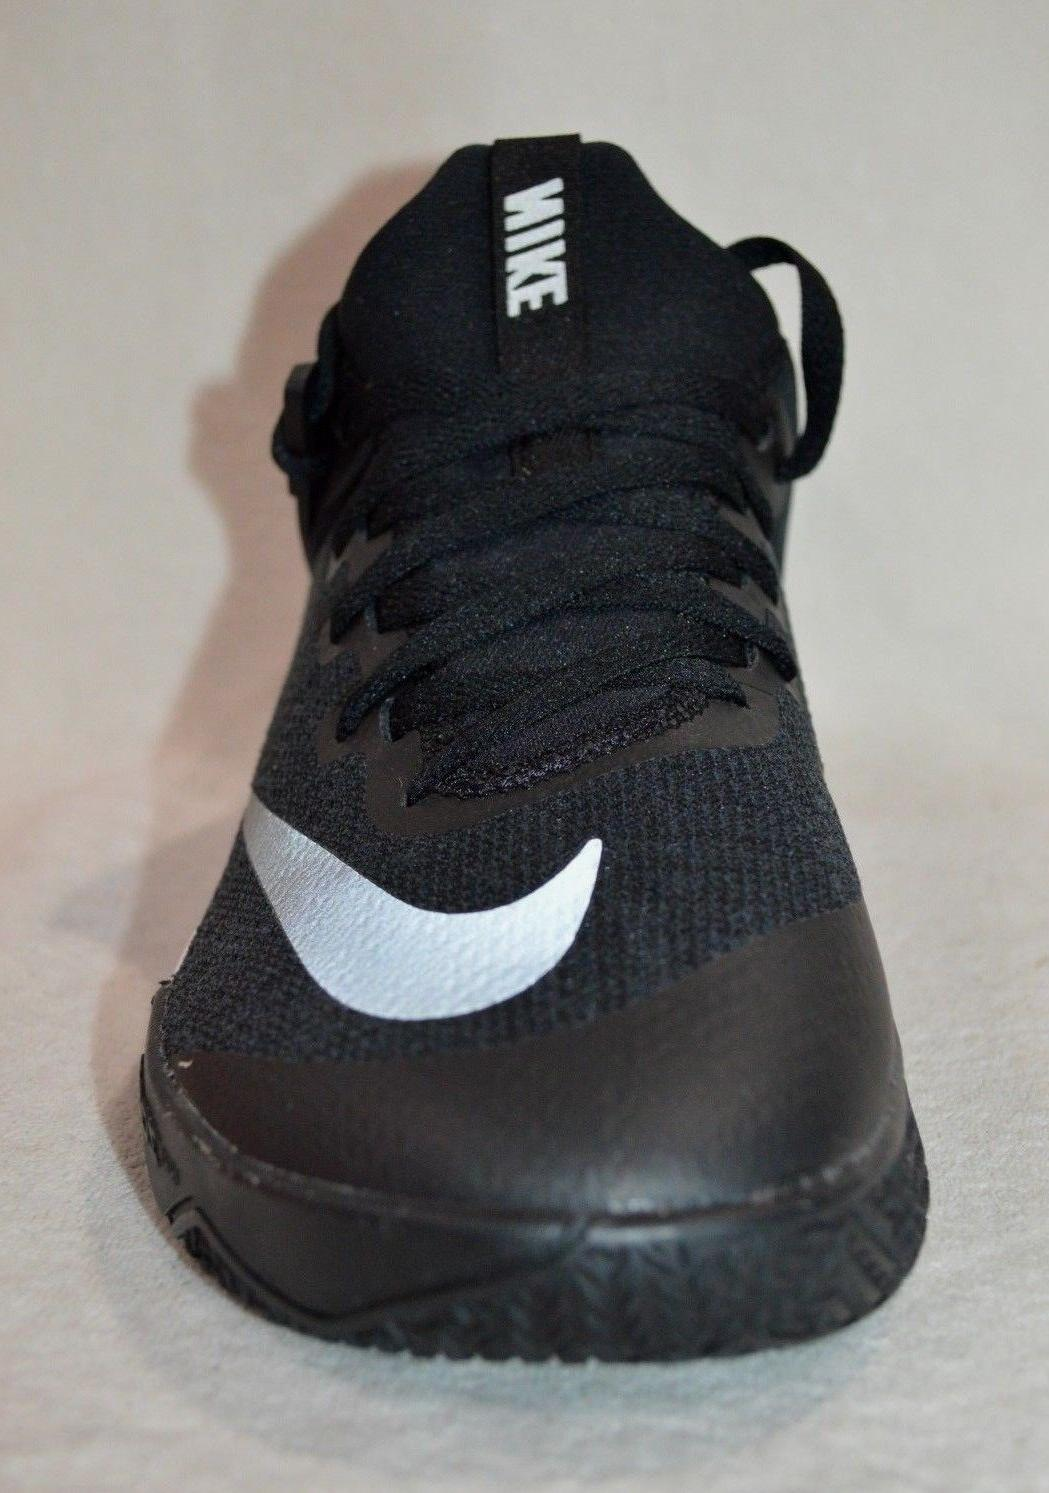 Nike Shift Black/White Men's Basketball 10.5/11/11.5/12